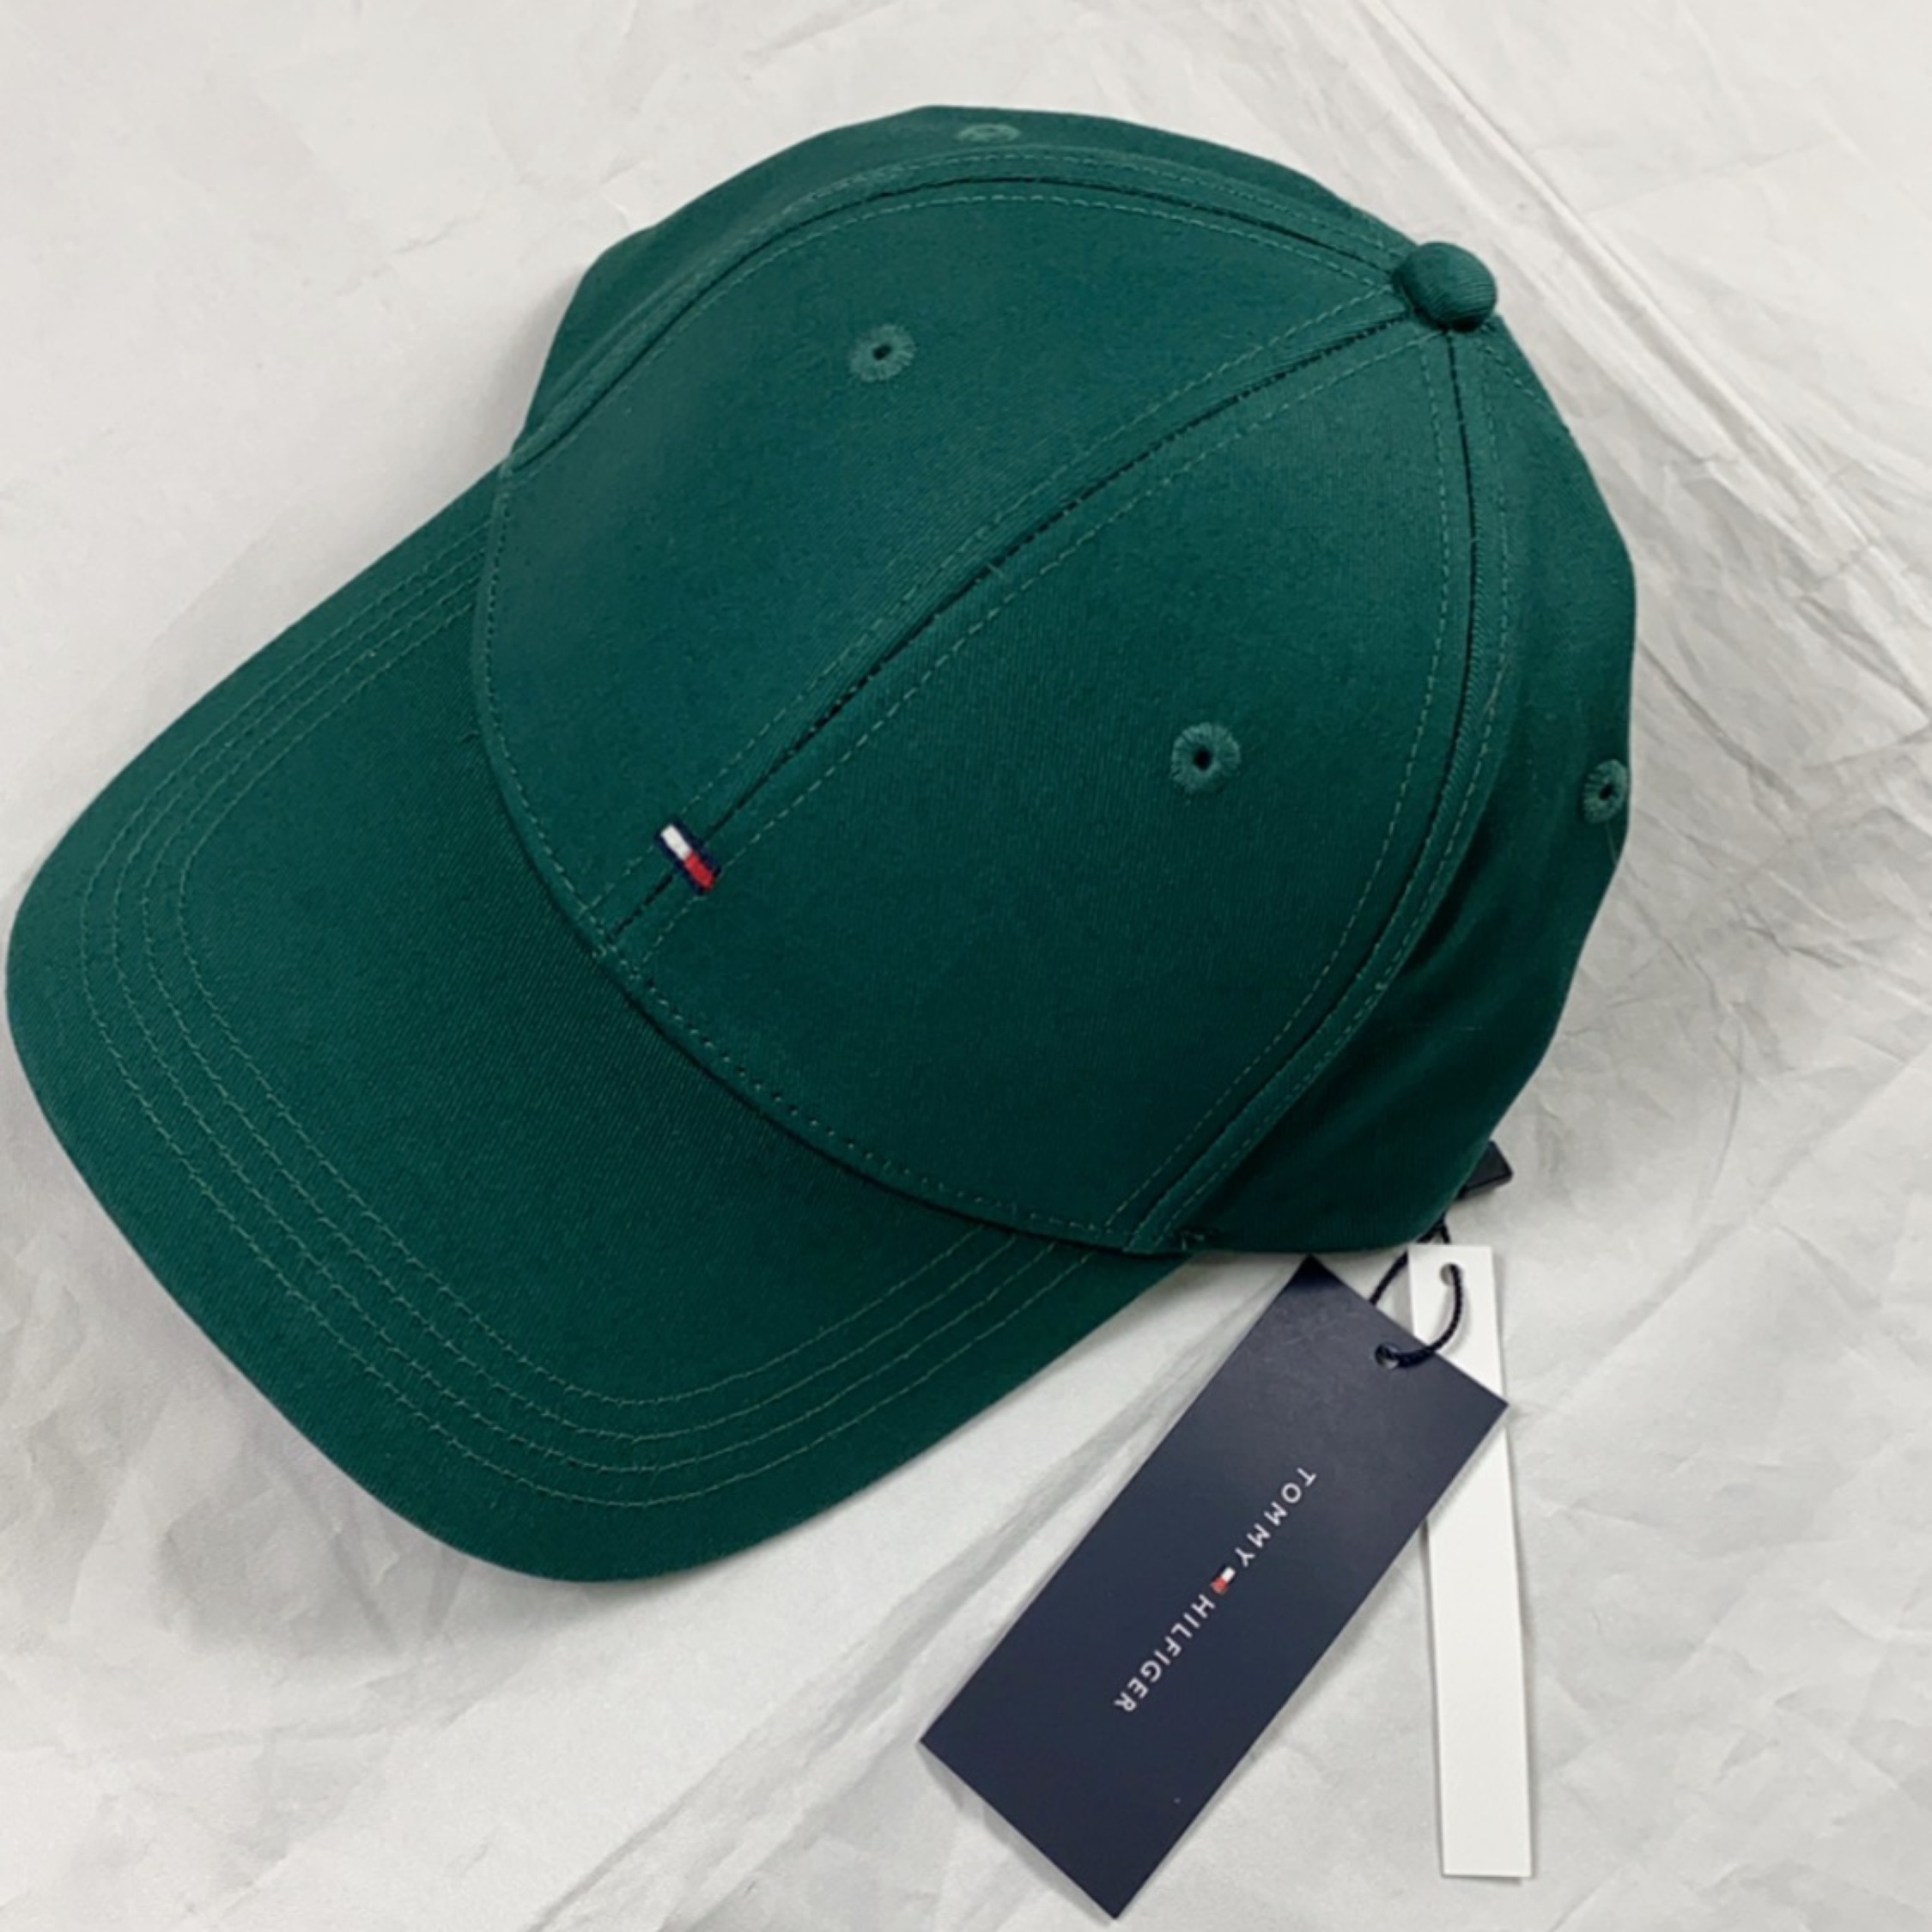 Tommy Hilfiger Green Cap Brand New